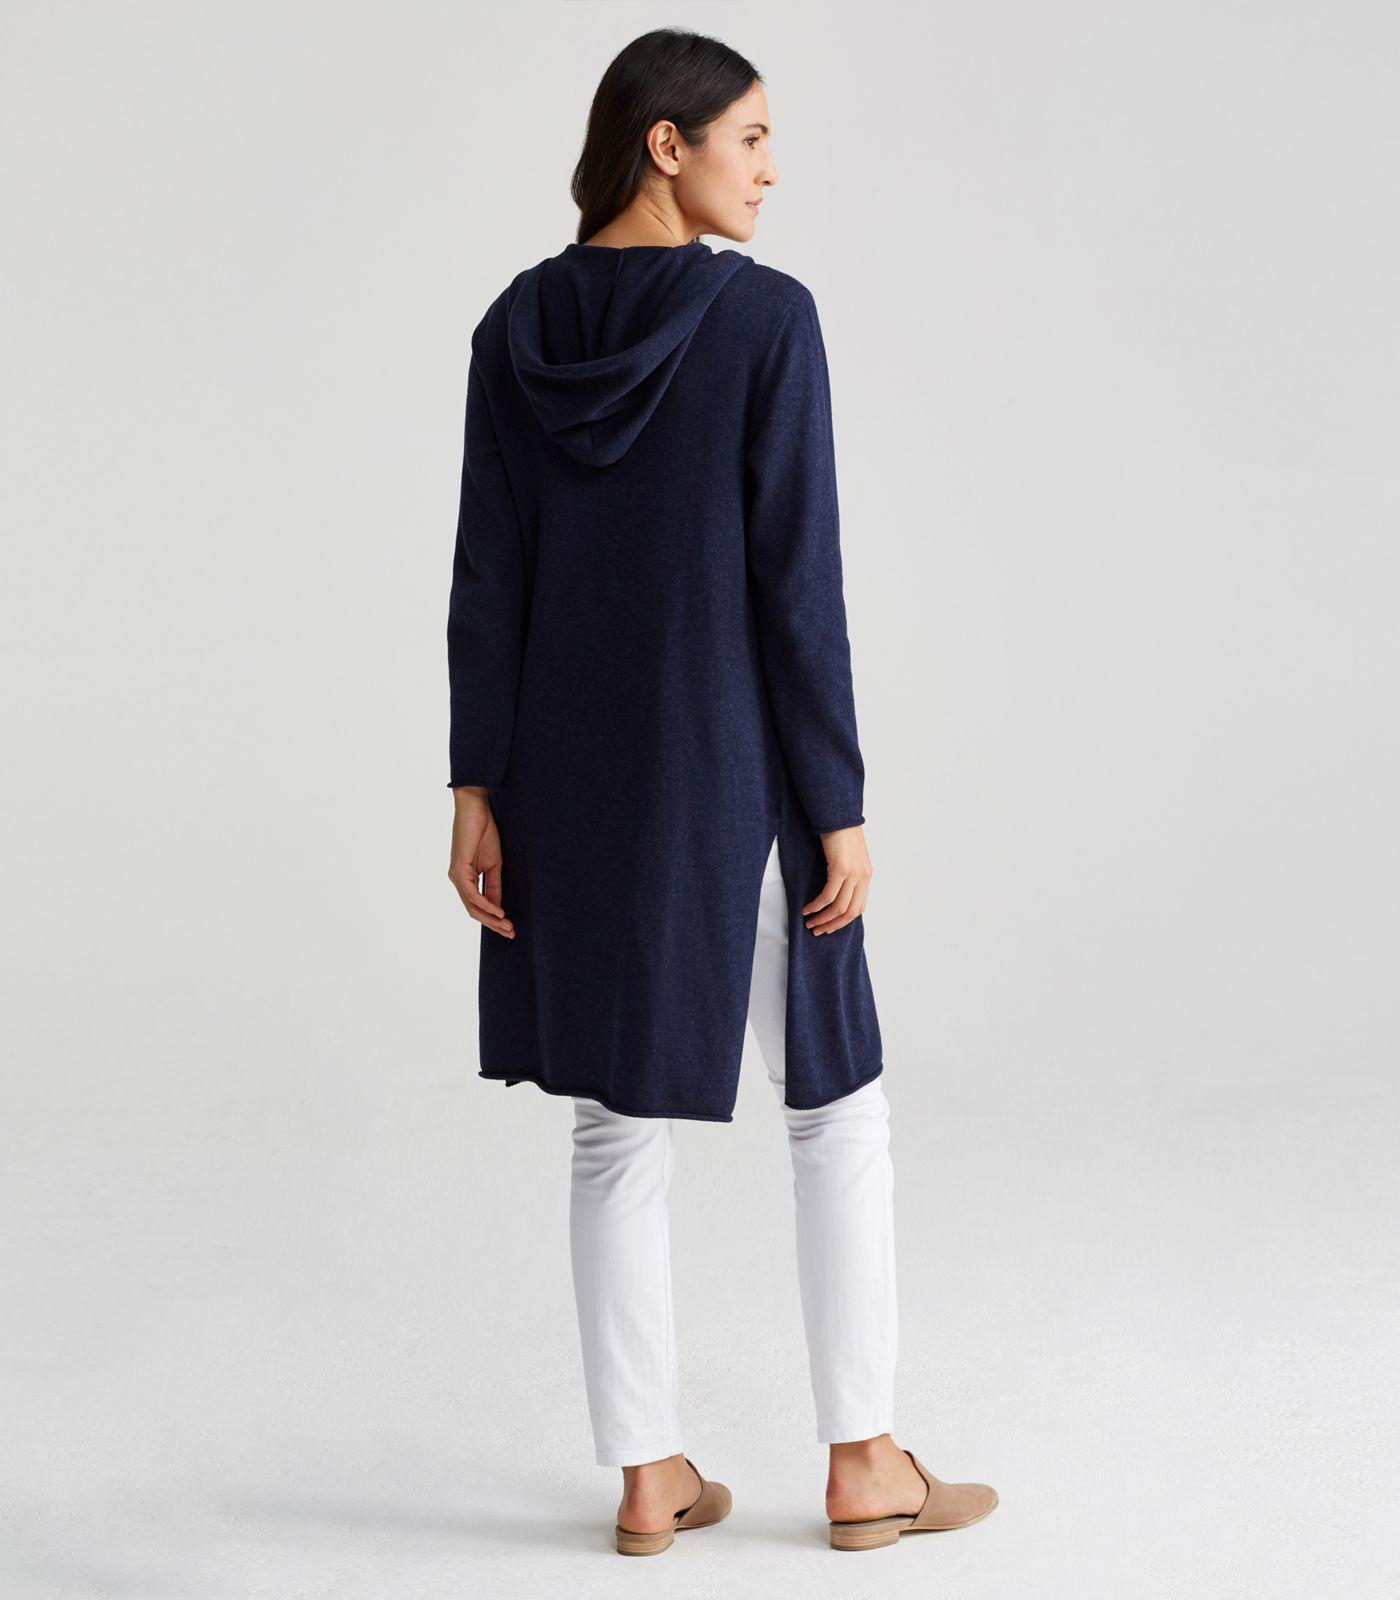 Lyst - Eileen Fisher Peruvian Organic Cotton Hooded Long Cardigan in ... a591584c7